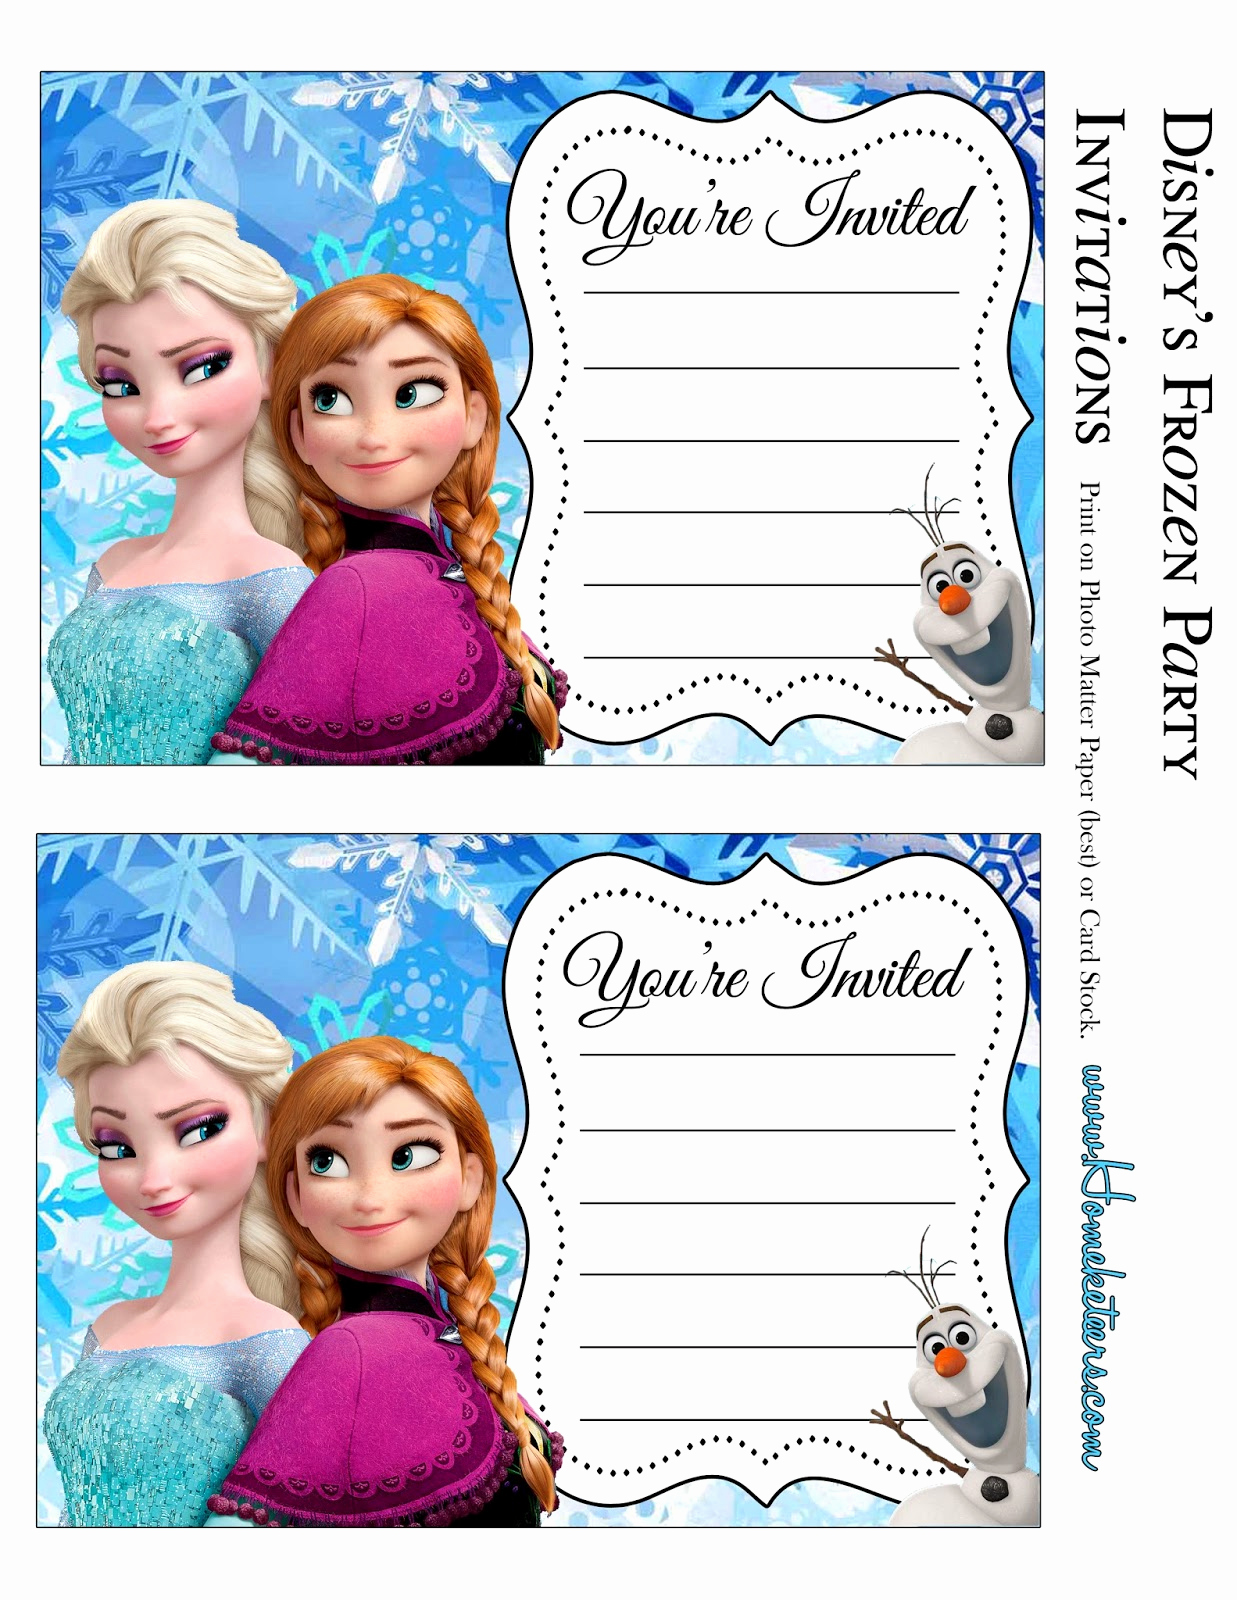 Frozen Invitation Templates Free Lovely Frozen Party Free Printable Invitations